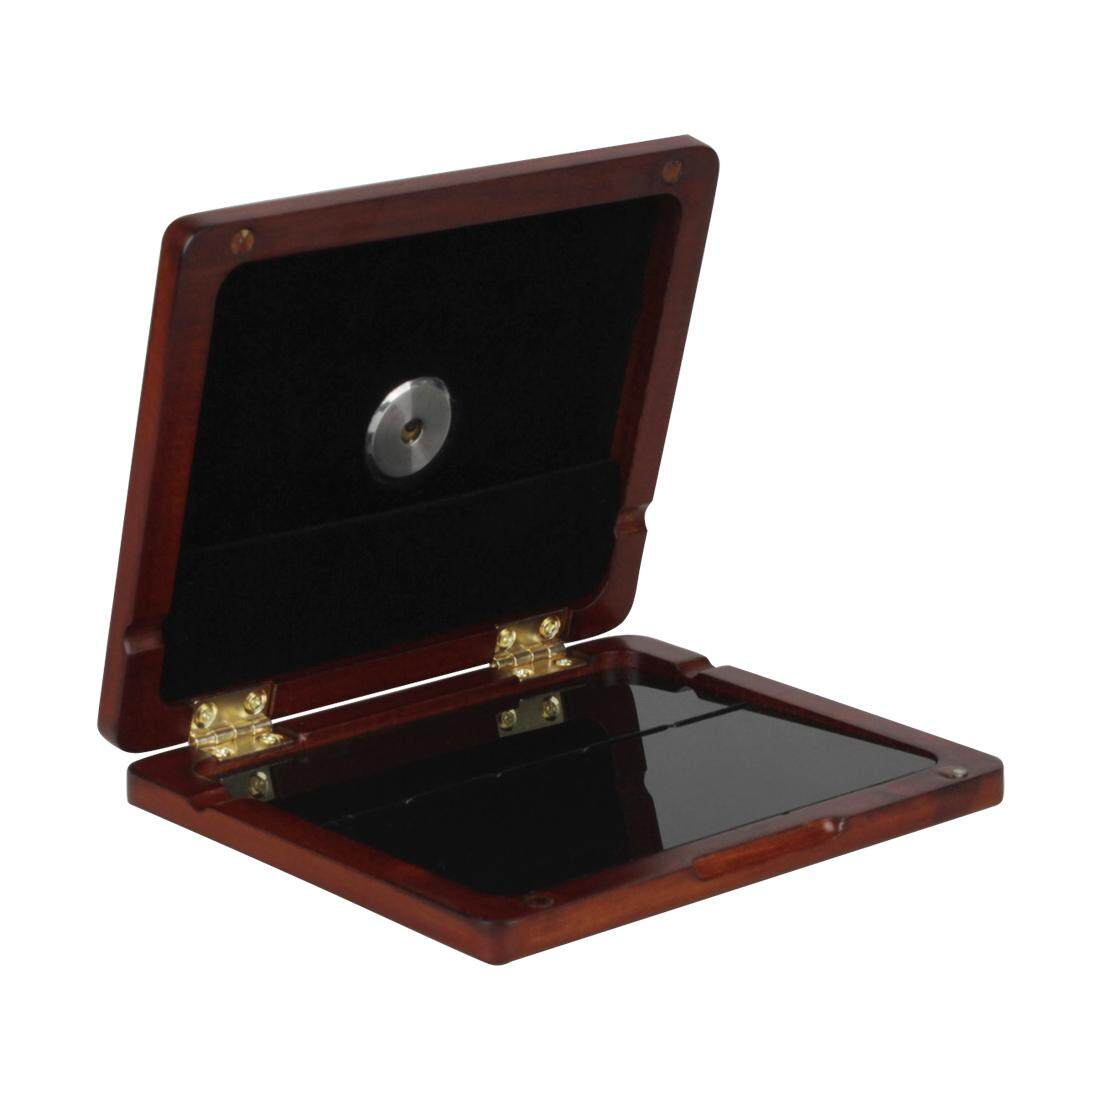 Wangwang Wood Oboe Reed Box 5 Reeds Accommodate With Hygrometer For Reed Storage By Wangwang Store.